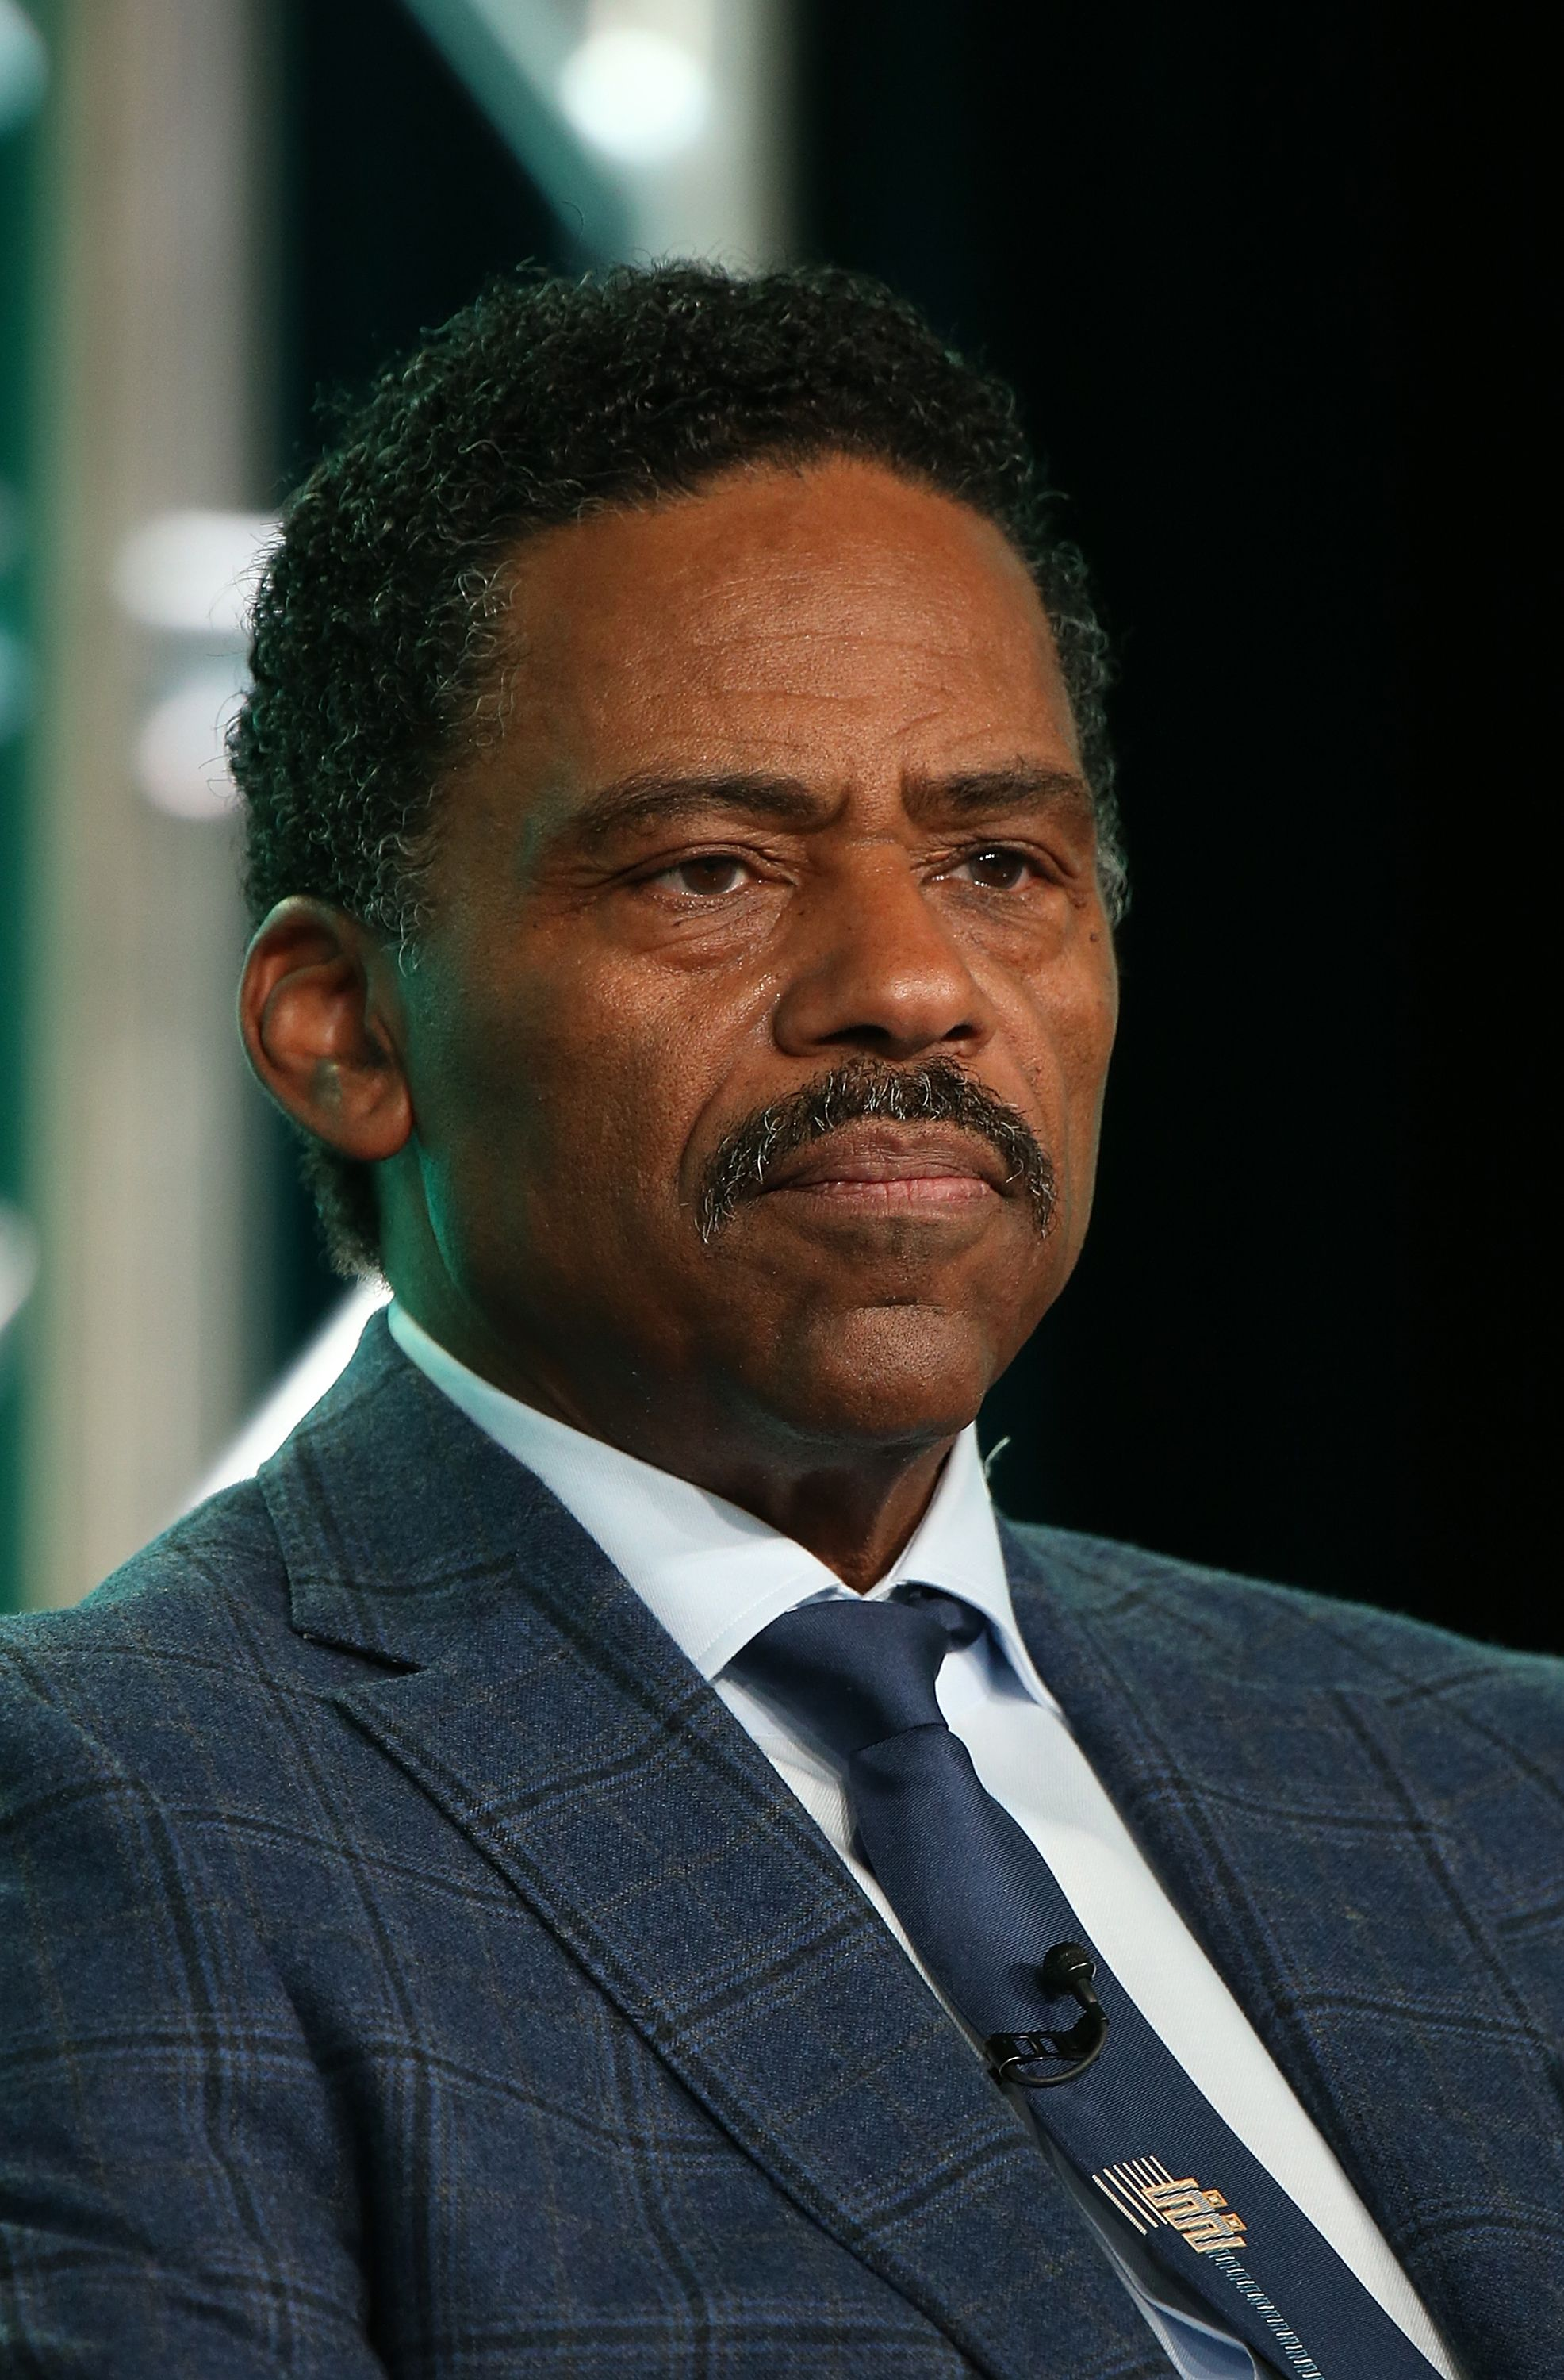 Richard Lawson speaks onstage at the 2018 Winter TCA in 2018 in Pasadena, California | Source: Getty Images